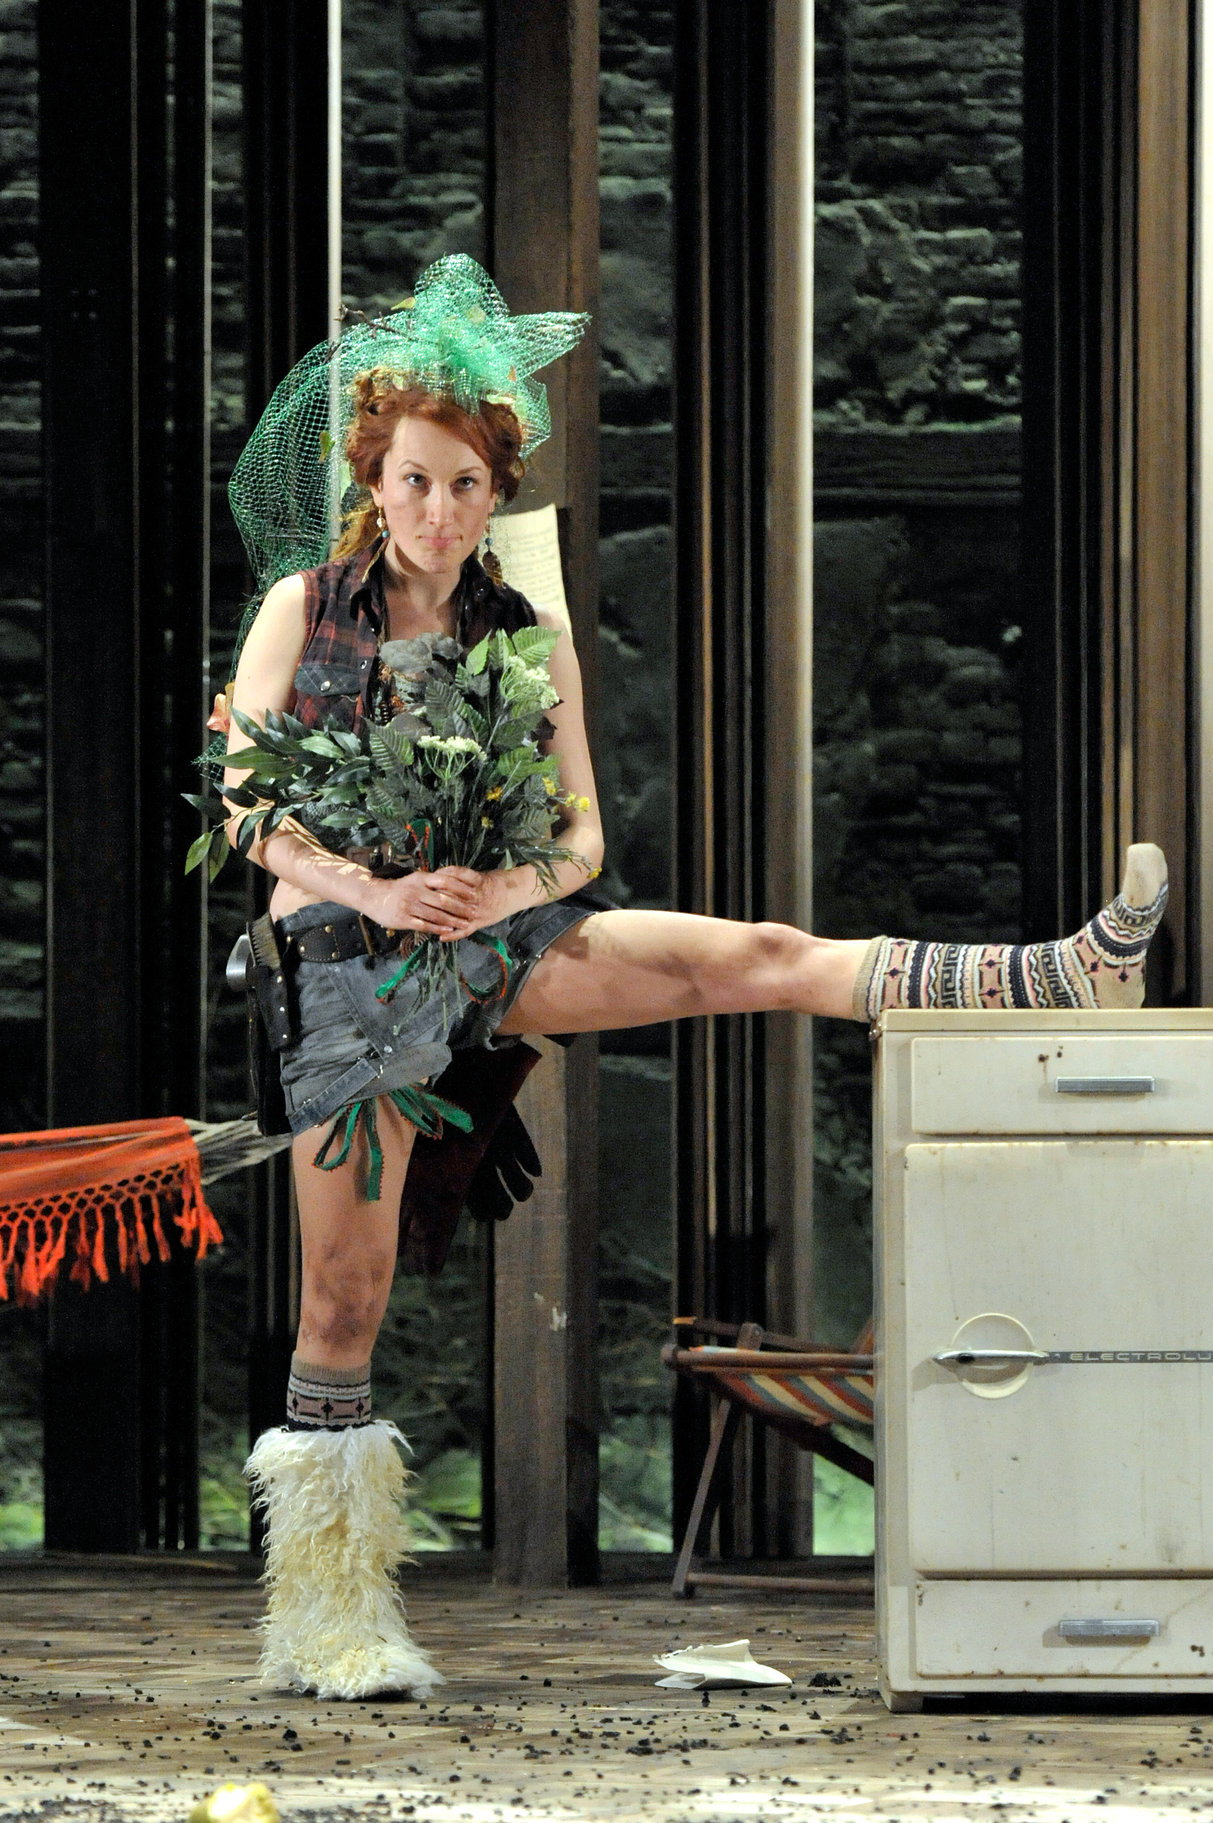 A woman holding a bouquet of leaves rests one leg on a table.